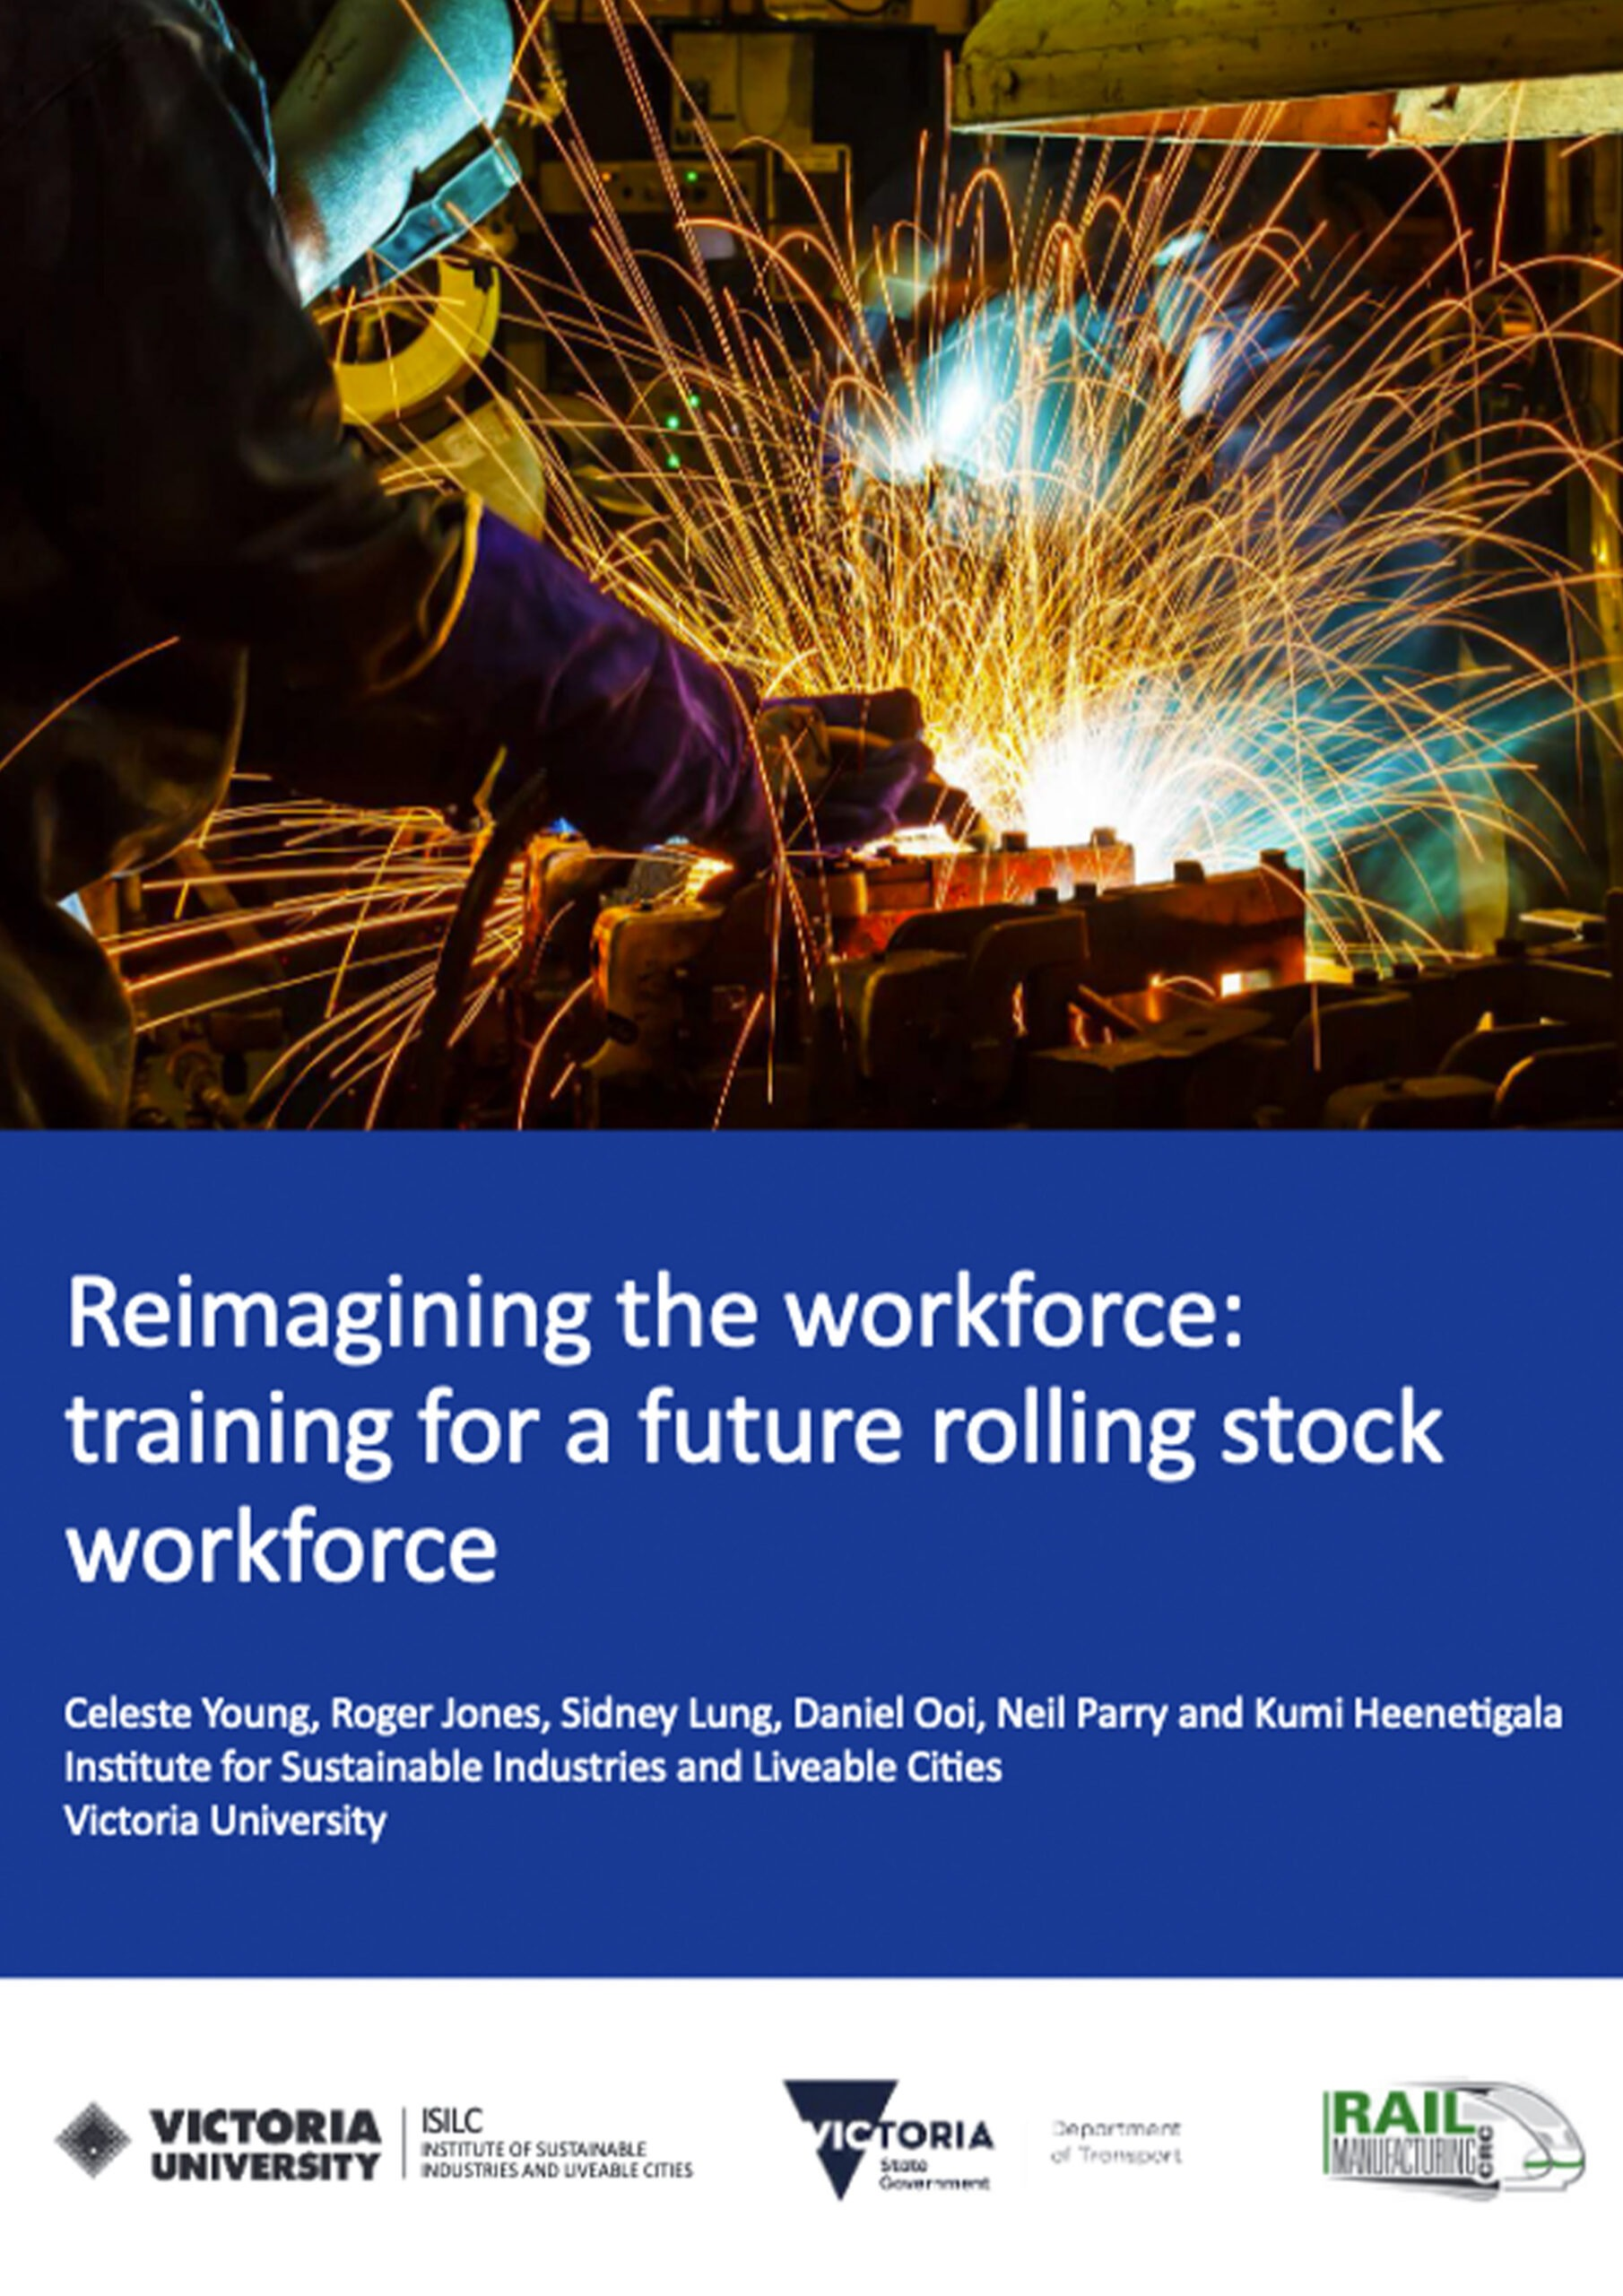 Training for a future rolling stock workforce